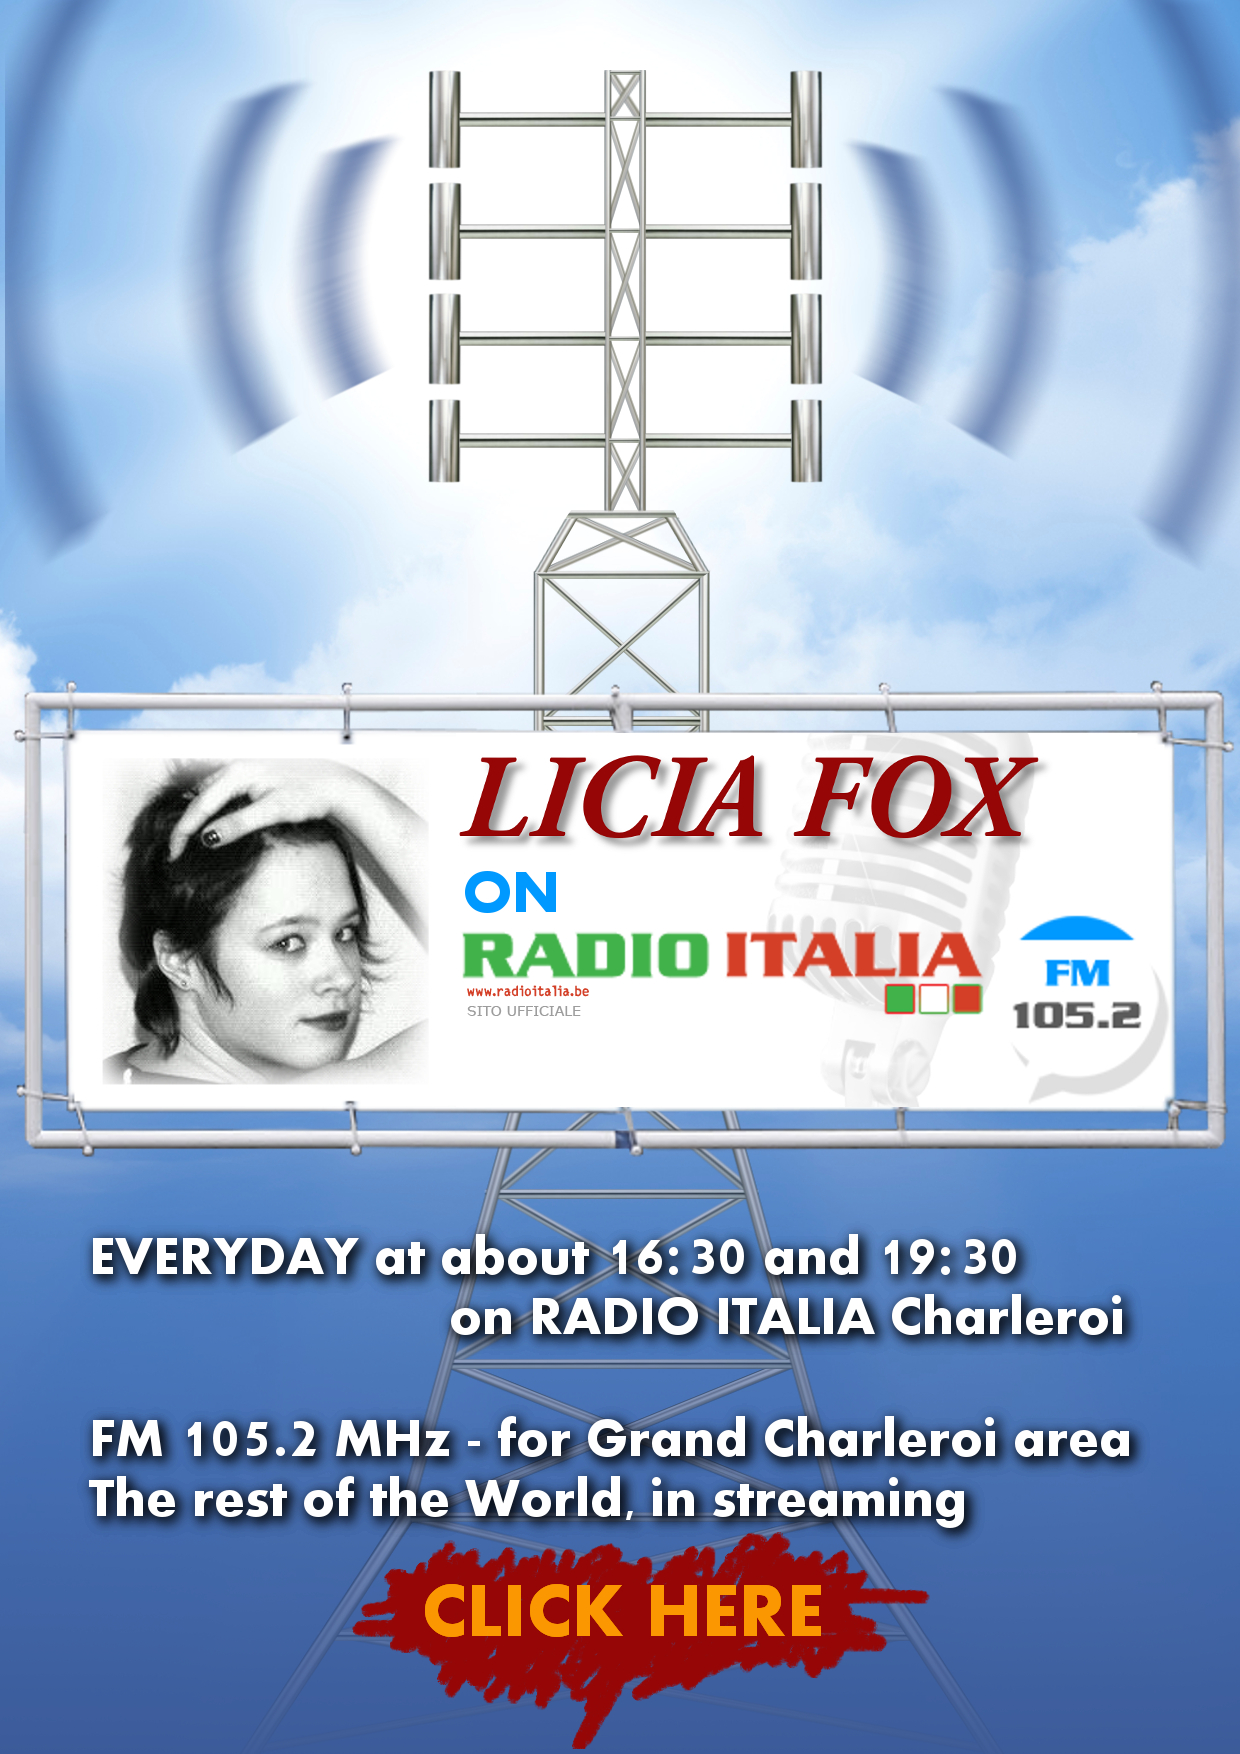 POster of Licia Fox on RADIO ITALIA Charl.